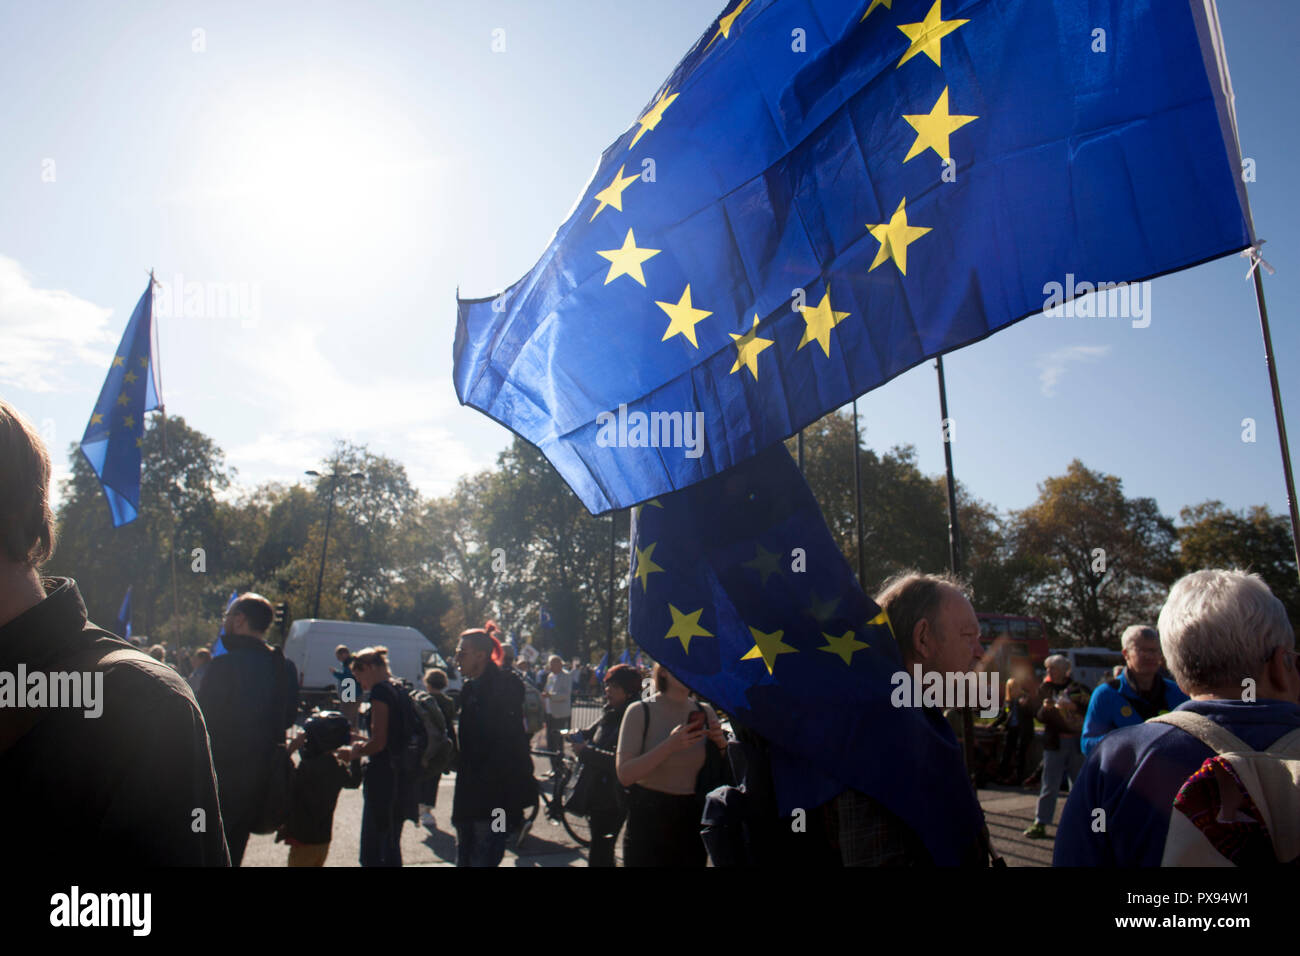 London, UK. 20th Oct, 2018. Protesters waving EU flags at the anti-Brexit People's Vote March in central London, 20 October 2018 Credit: Hallberg Photo/Alamy Live News - Stock Image